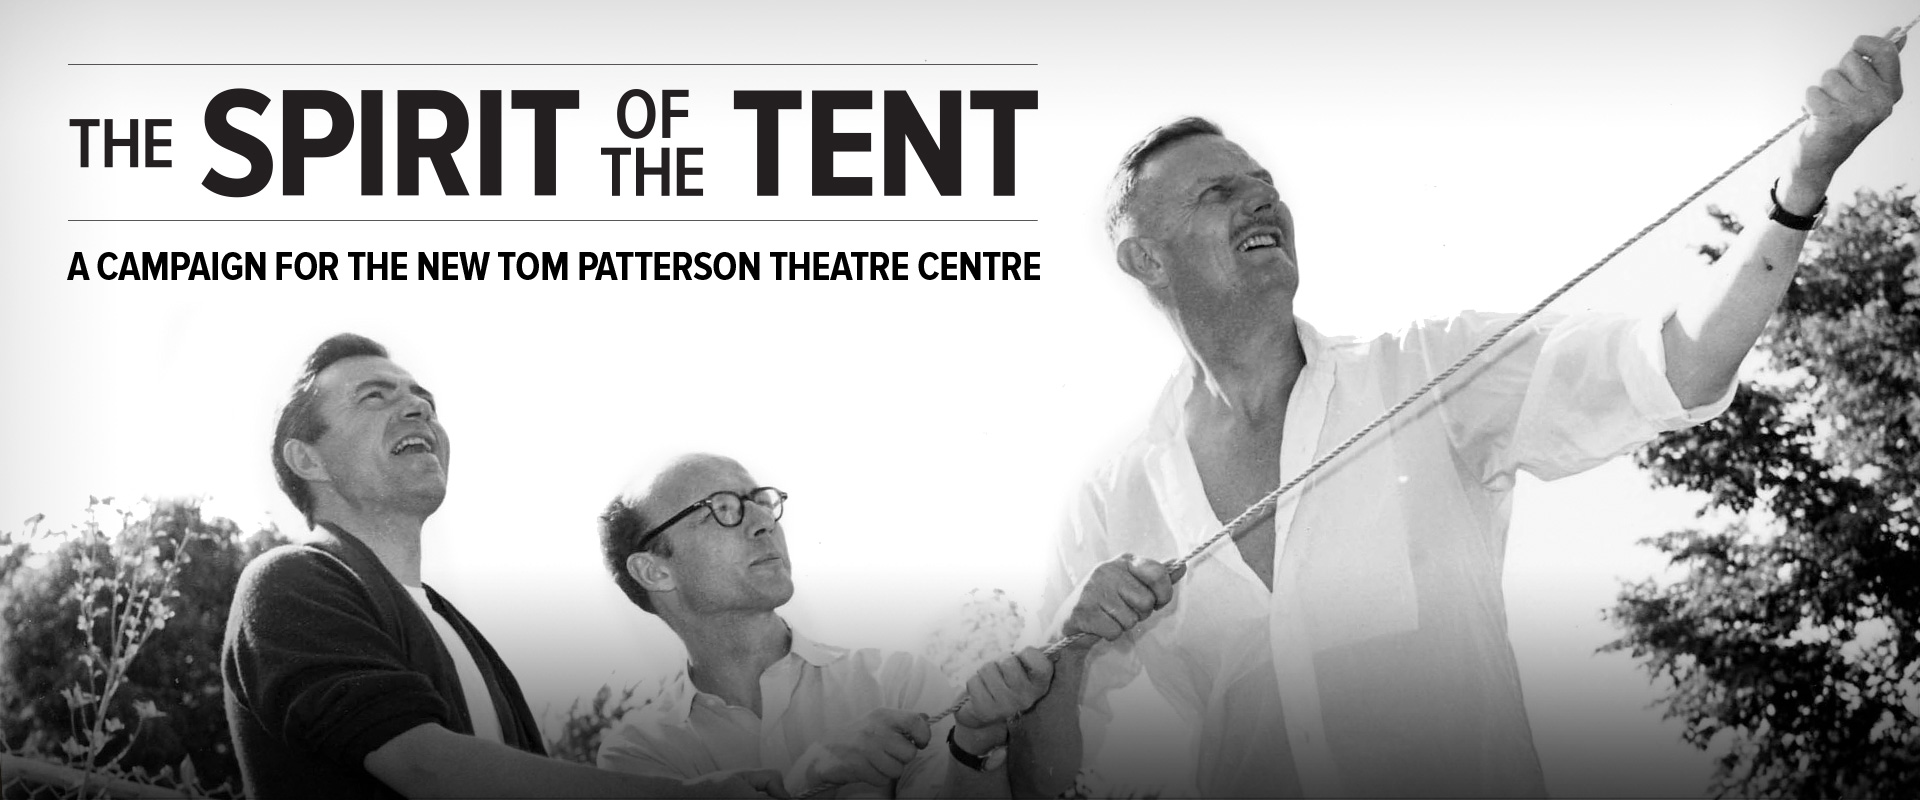 The Spirit of the Tent | A campaign for the new Tom Patterson Theatre Centre